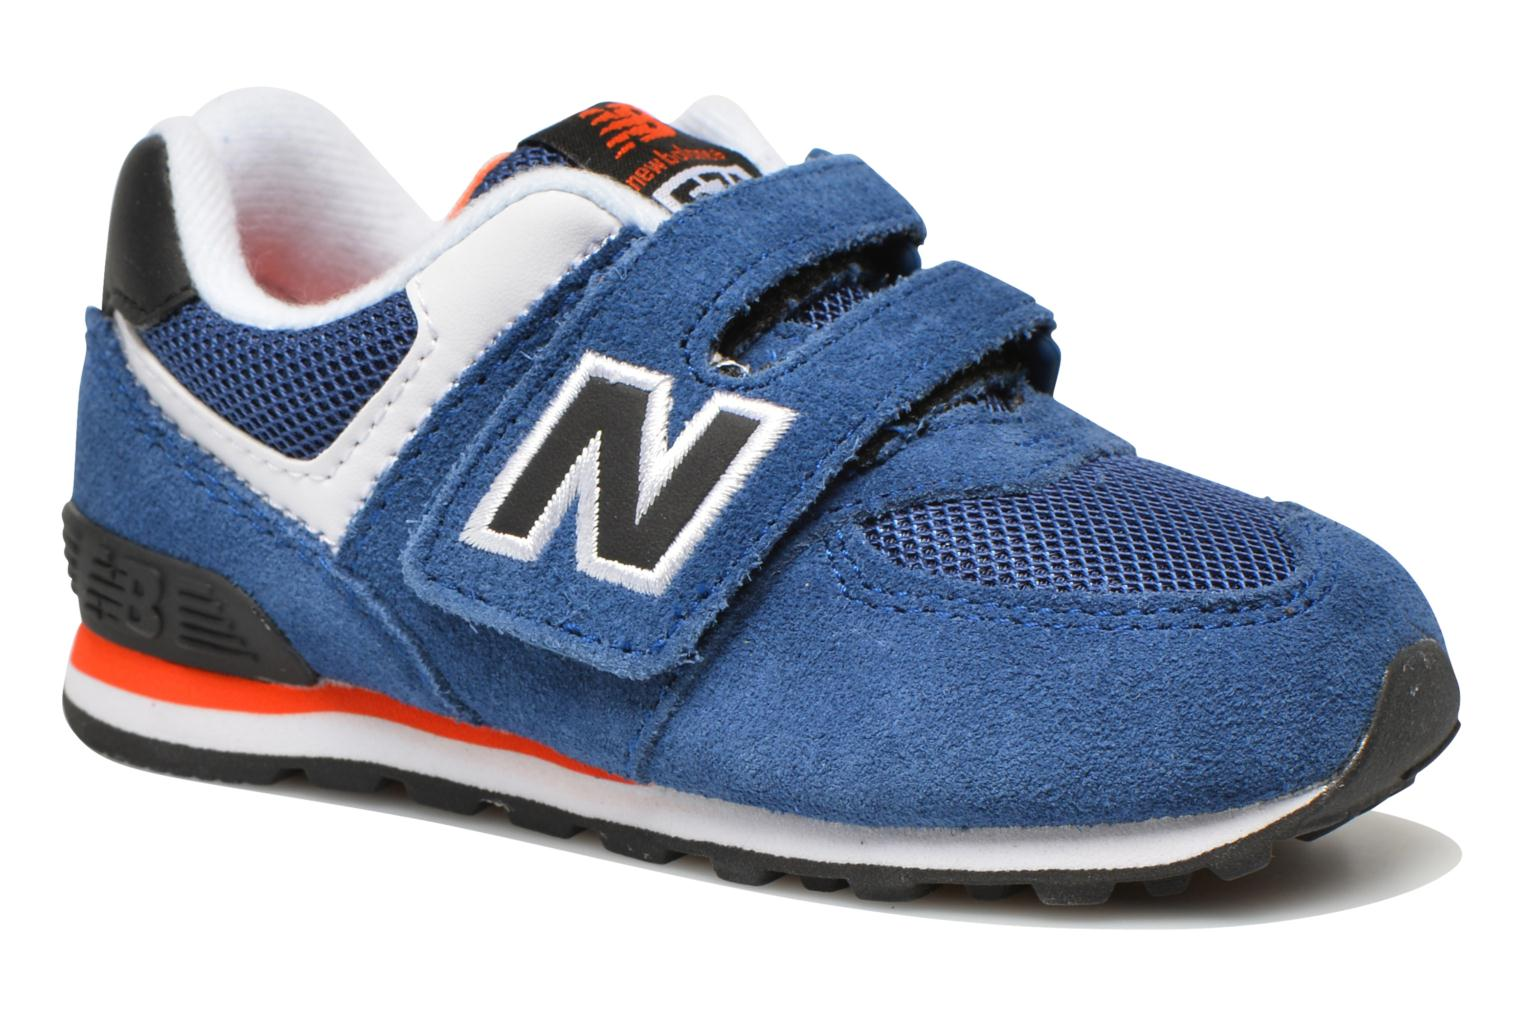 Sneakers KG574 by New Balance